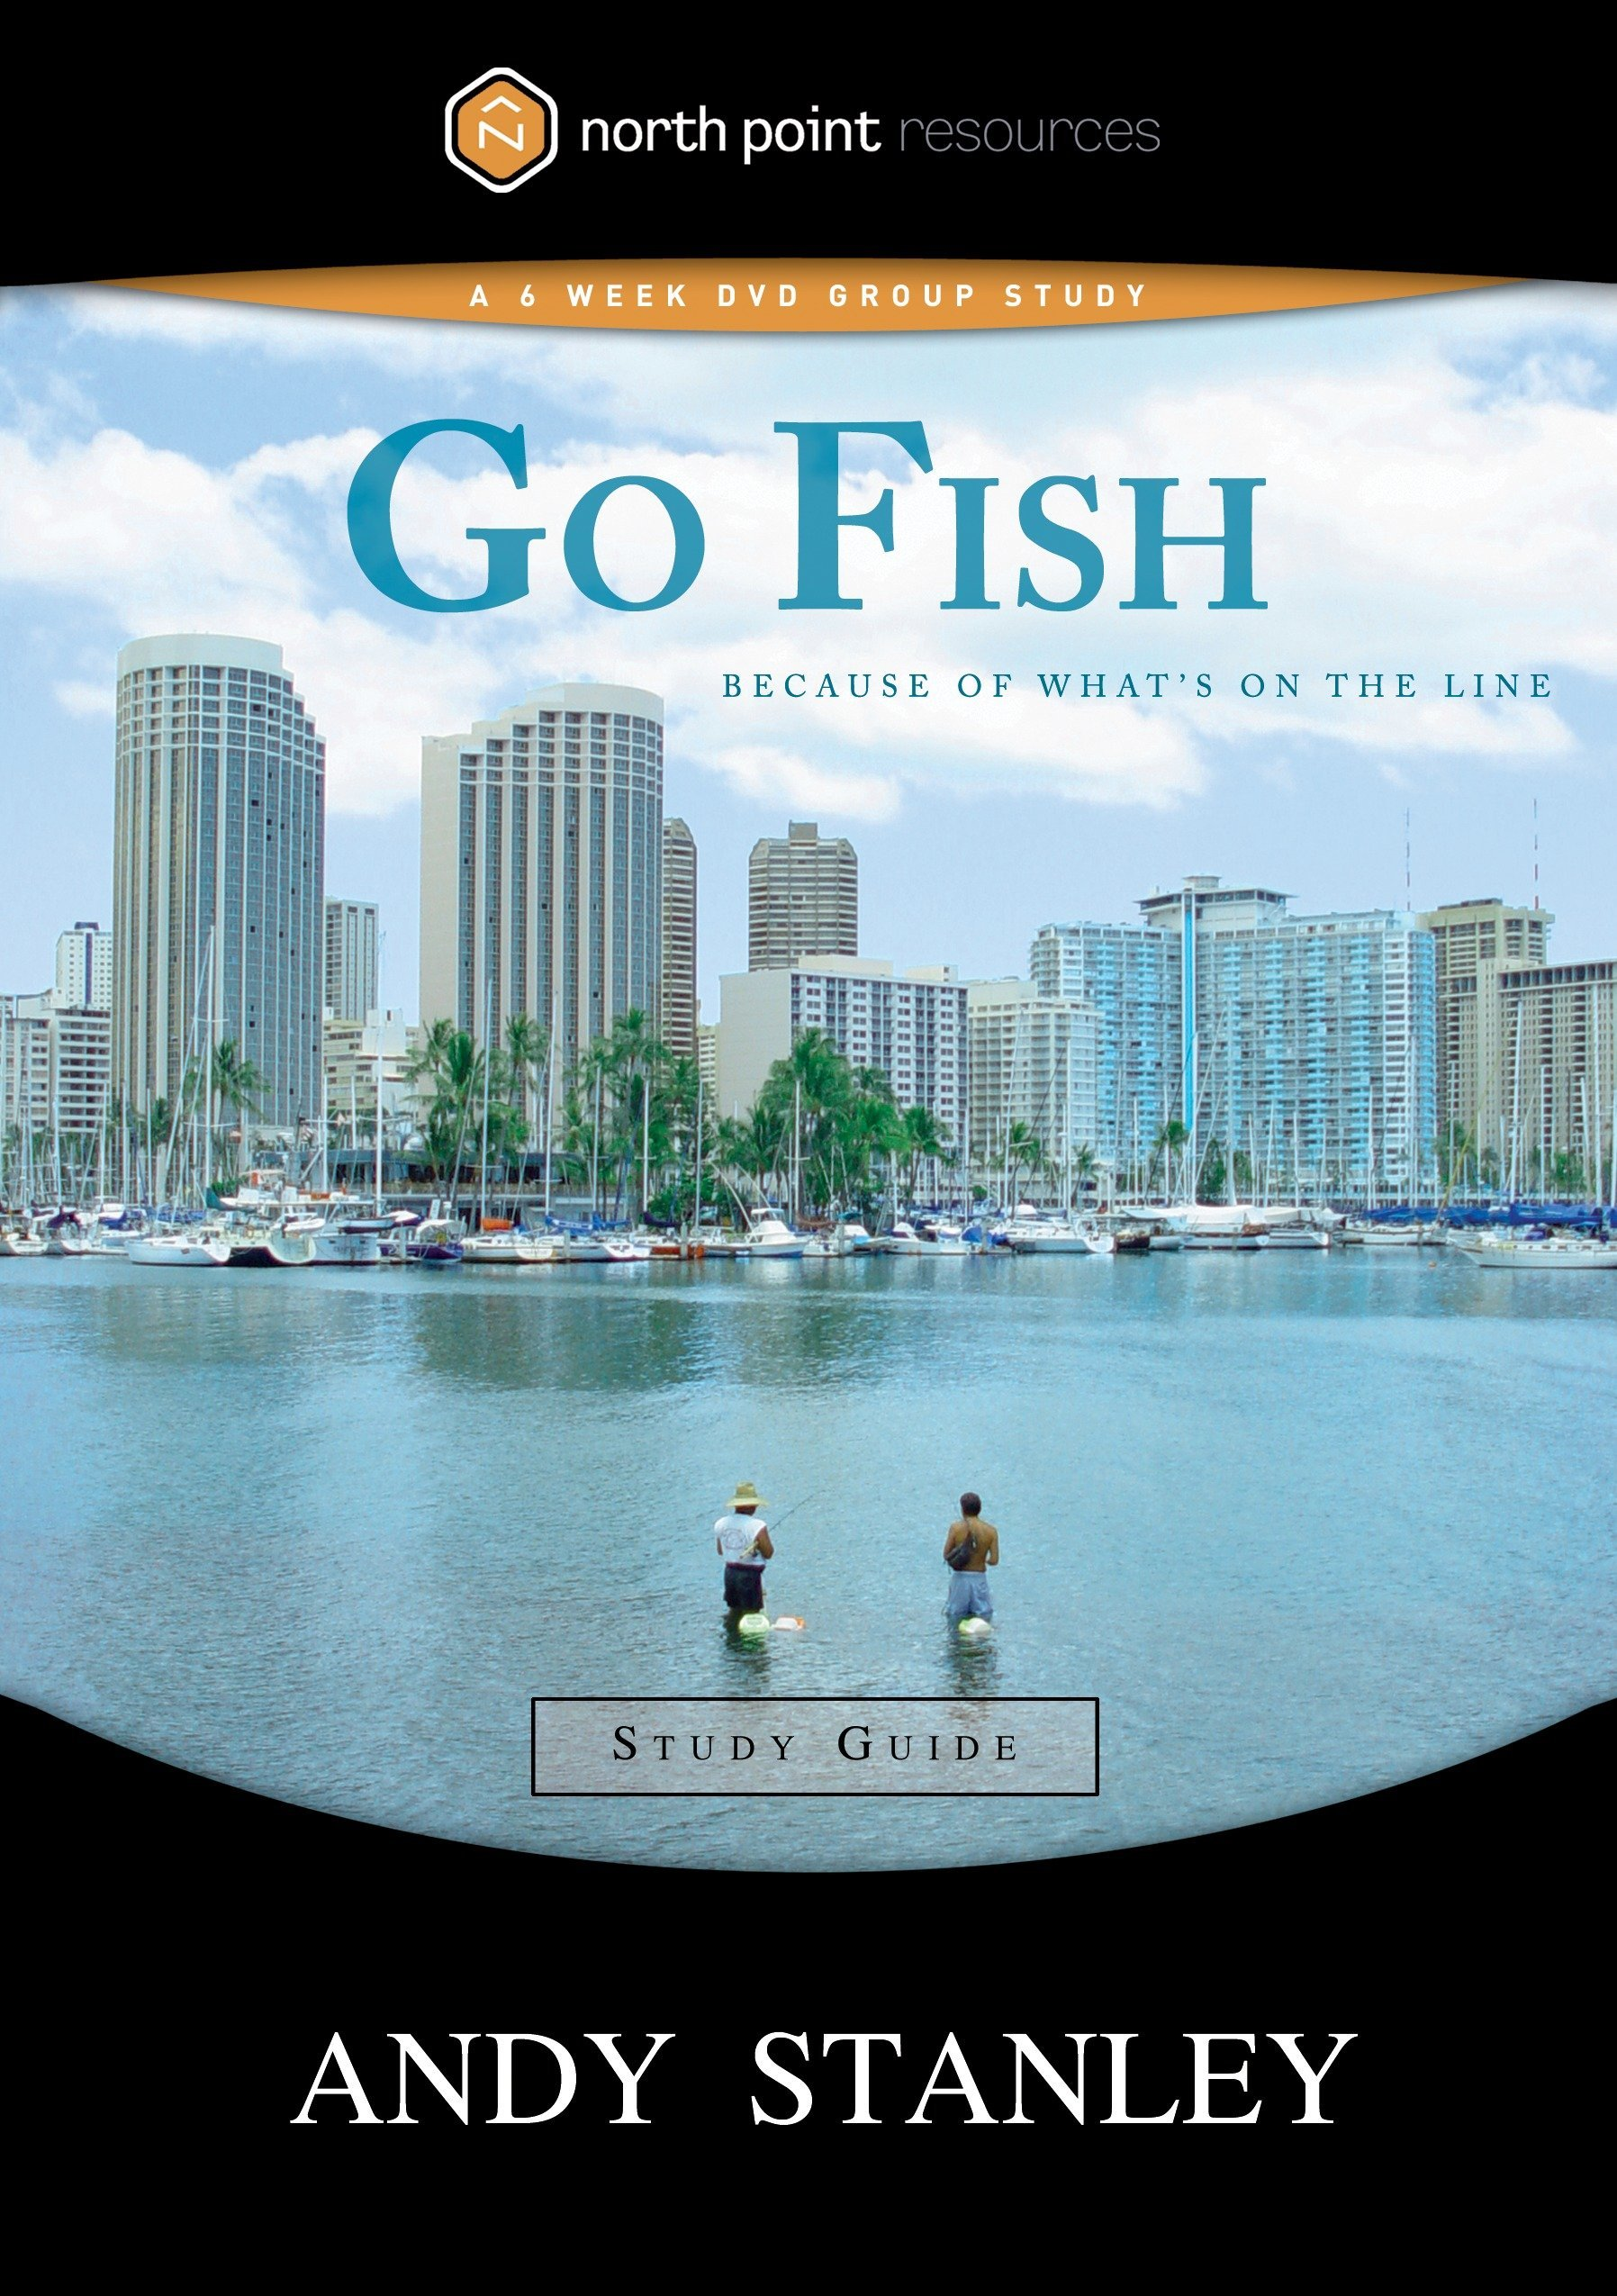 Go Fish Study Guide: Because of What's on the Line (North Point Resources Series)